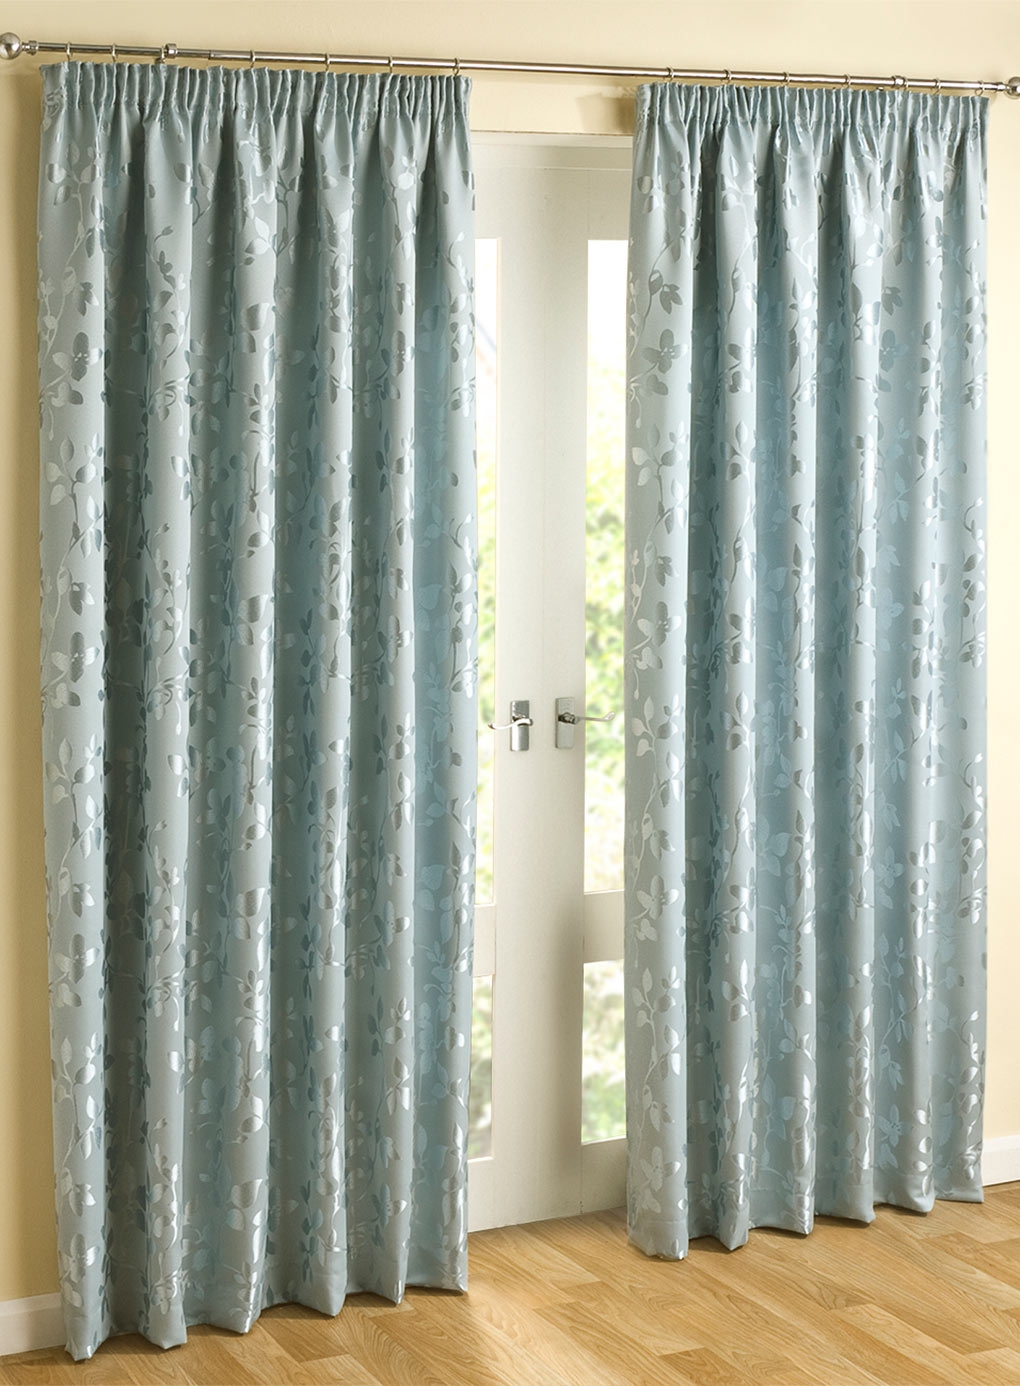 Alice Pencil Pleat Curtain Duck Egg Curtains Accessories With Pencil Pleat Curtains (View 12 of 15)